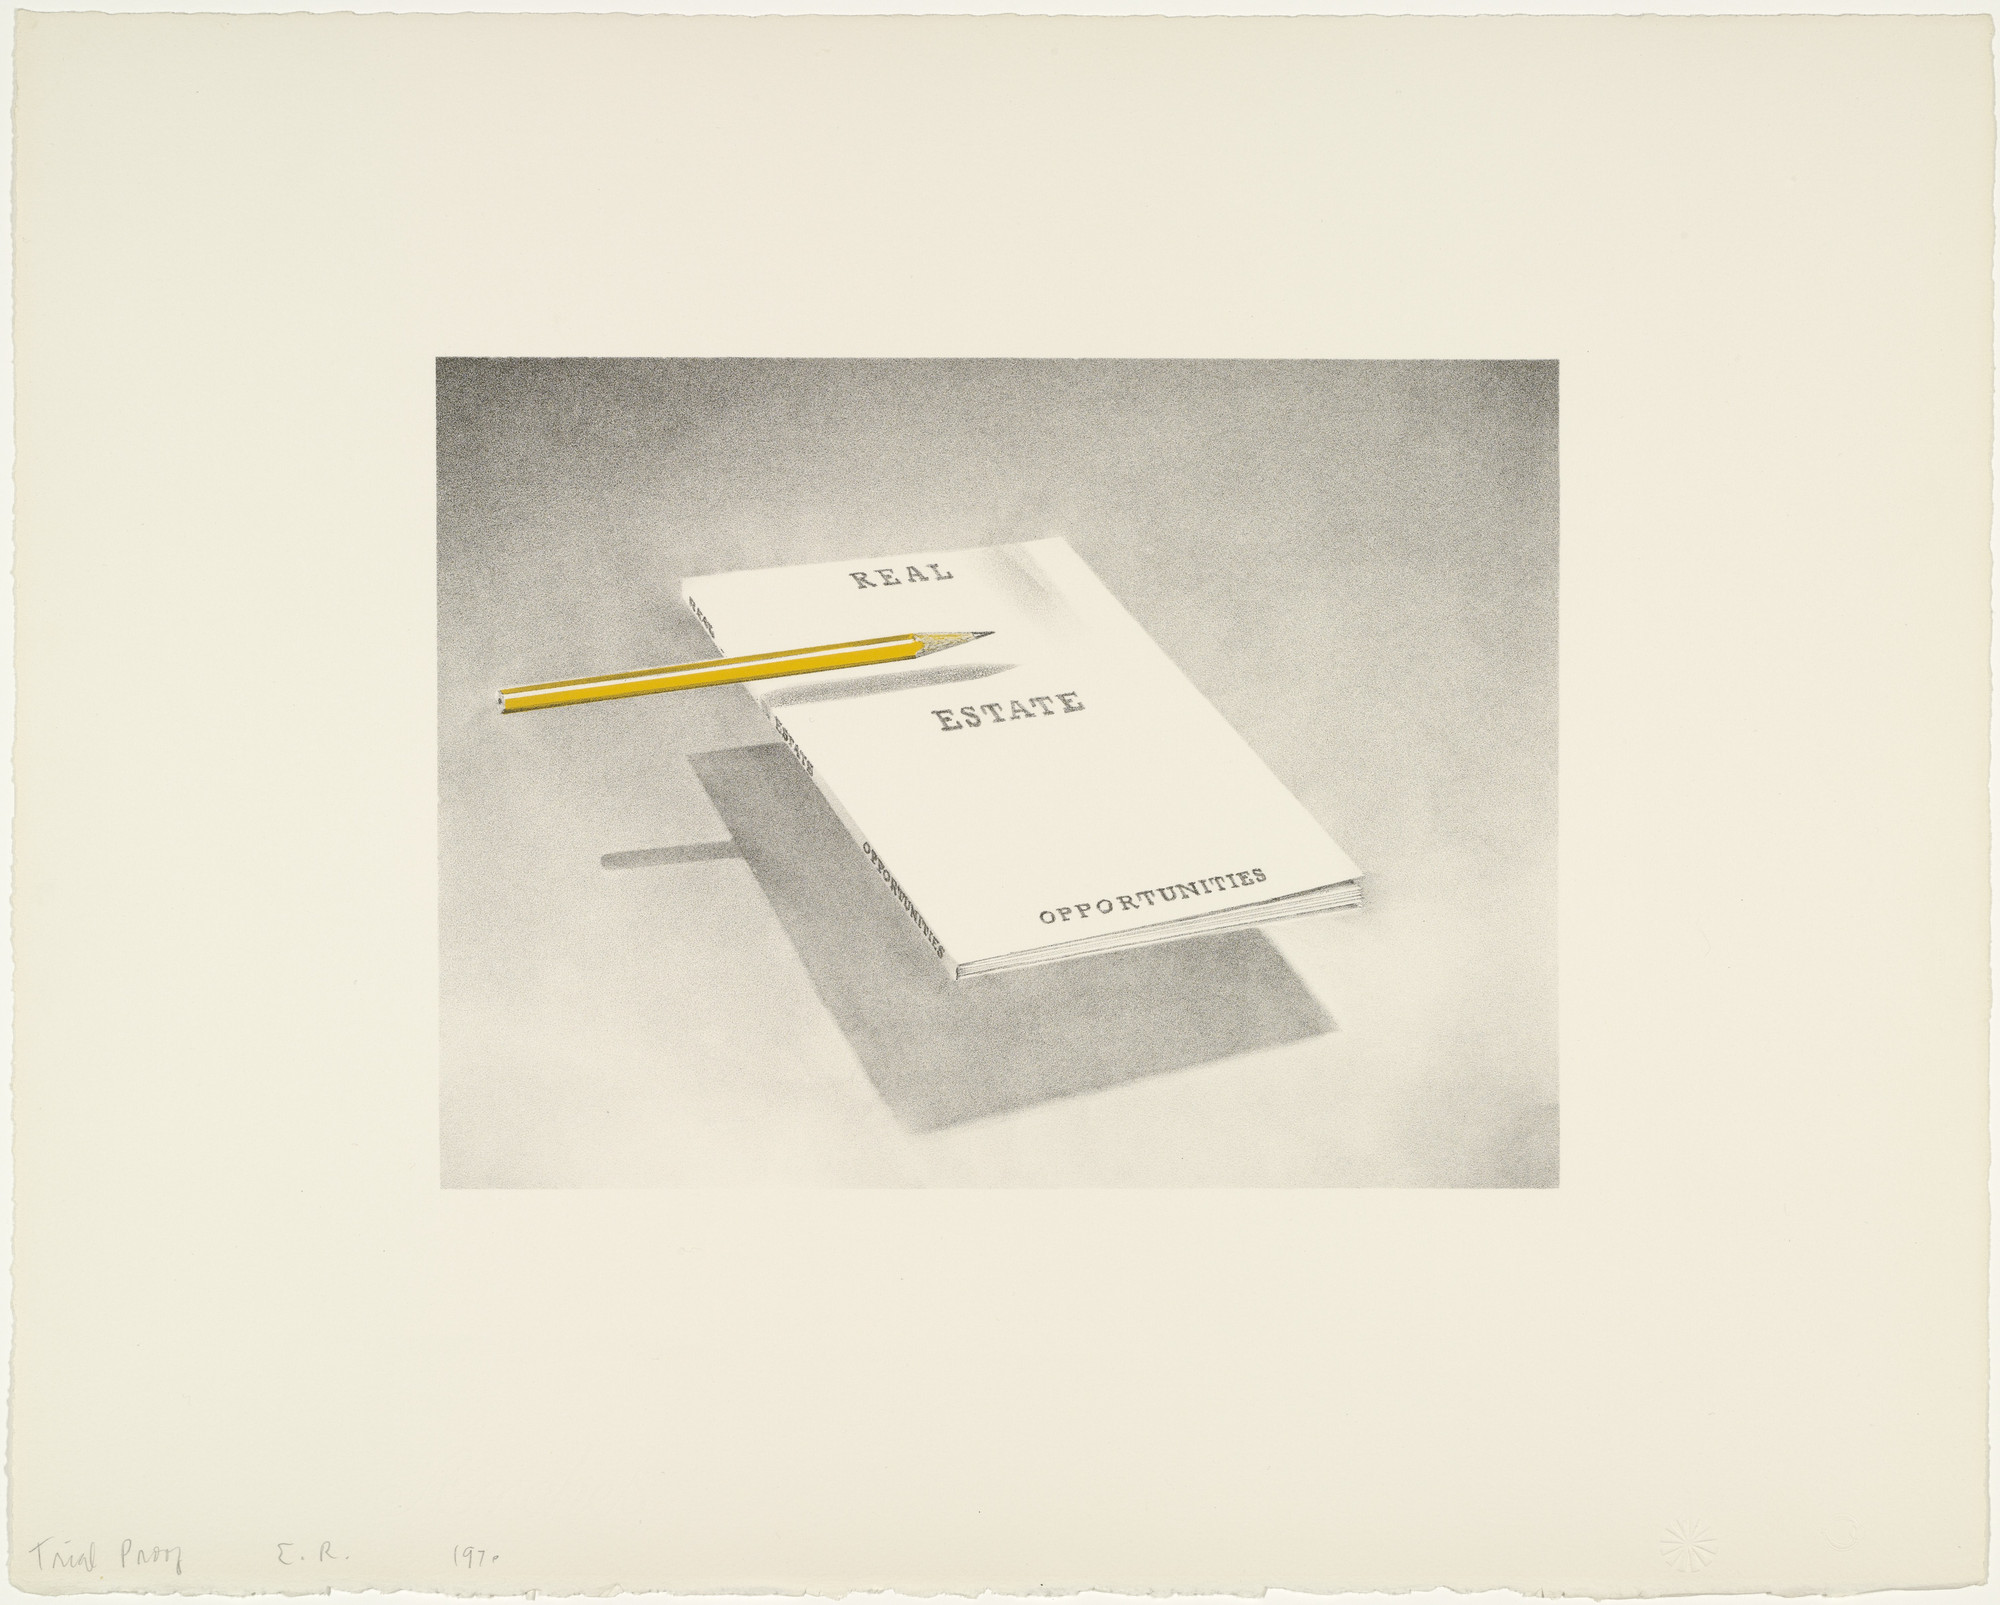 Edward Ruscha. Real Estate Opportunities from Book Covers. 1970